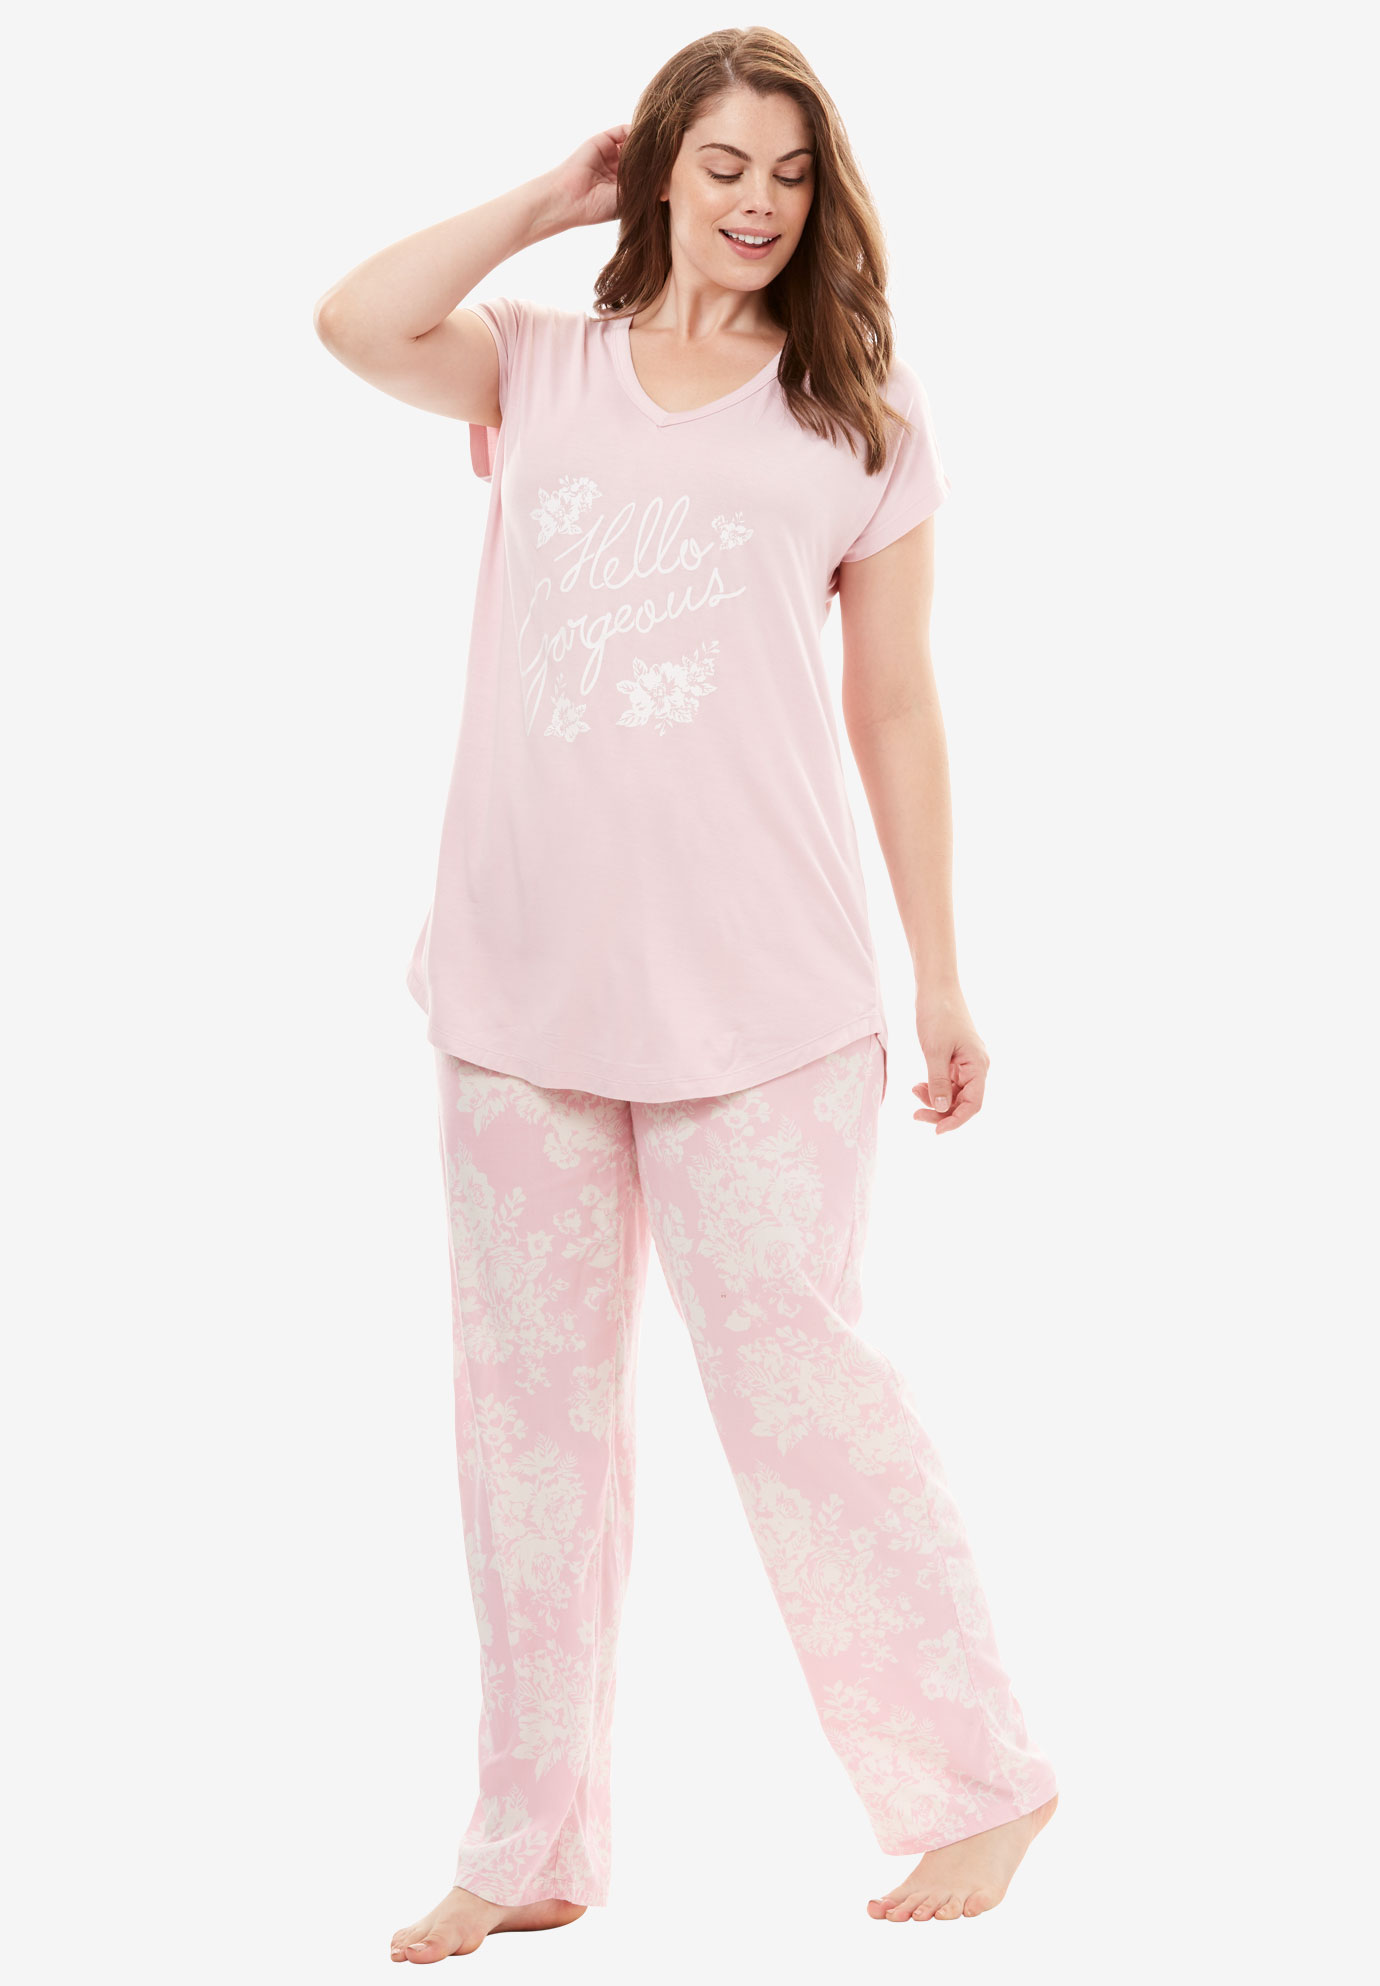 V-Neck Graphic Tee with Wide Leg Pants PJ Set by Dreams & Co.®, PINK HELLO GORGEOUS, hi-res